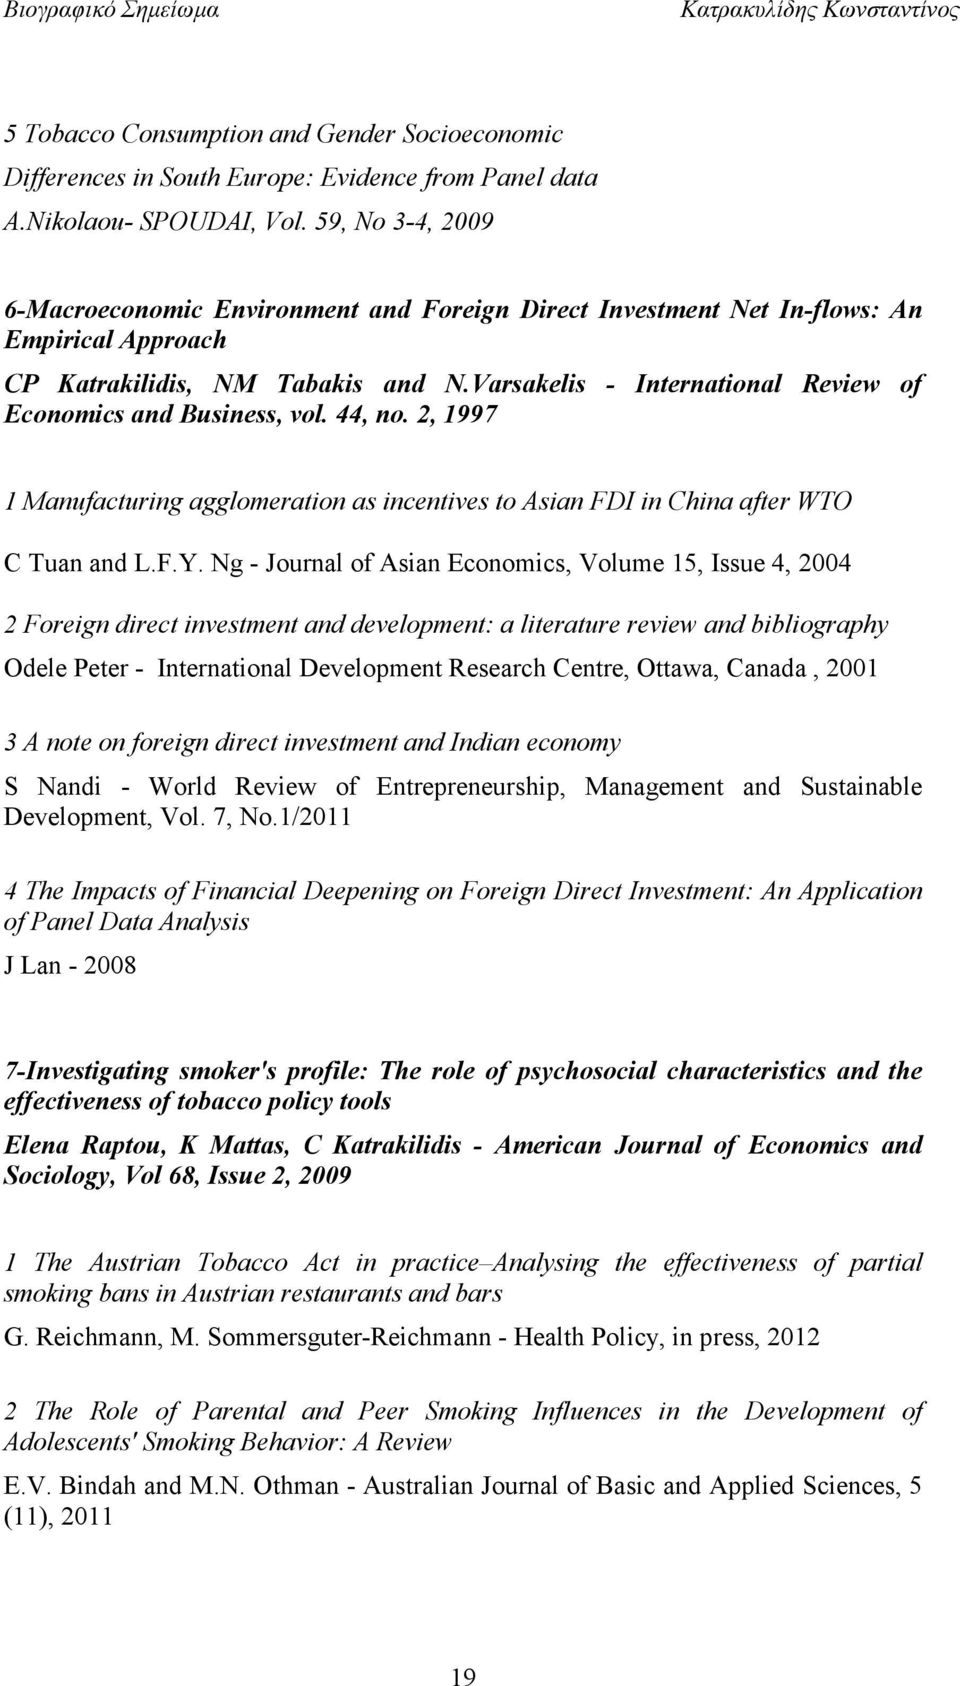 Varsakelis - International Review of Economics and Business, vol. 44, no. 2, 1997 1 Manufacturing agglomeration as incentives to Asian FDI in China after WTO C Tuan and L.F.Y.